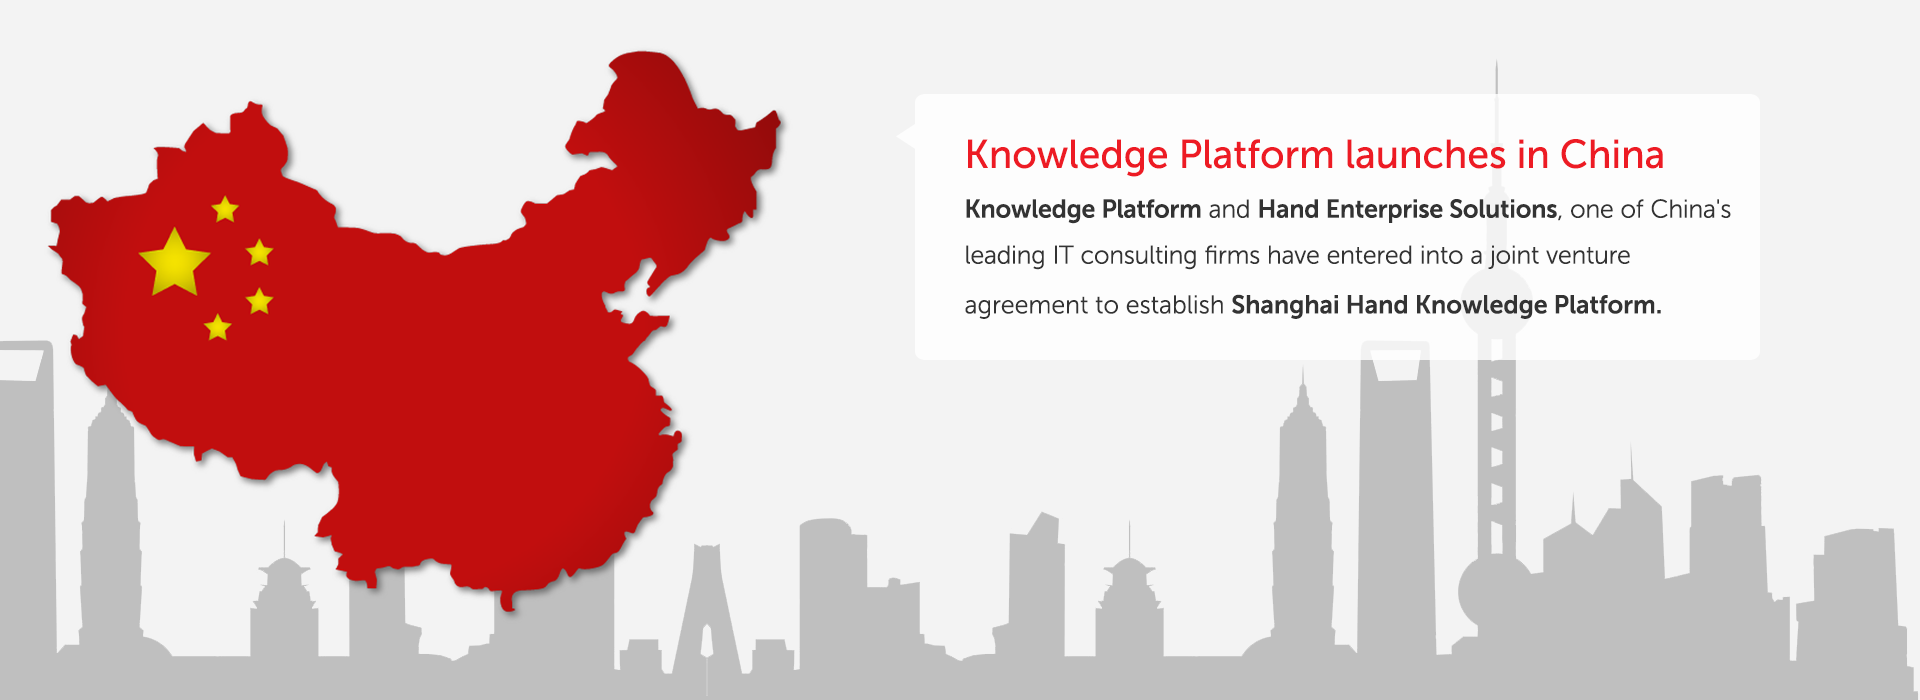 Knowledge Platform launches blended learning solution in China